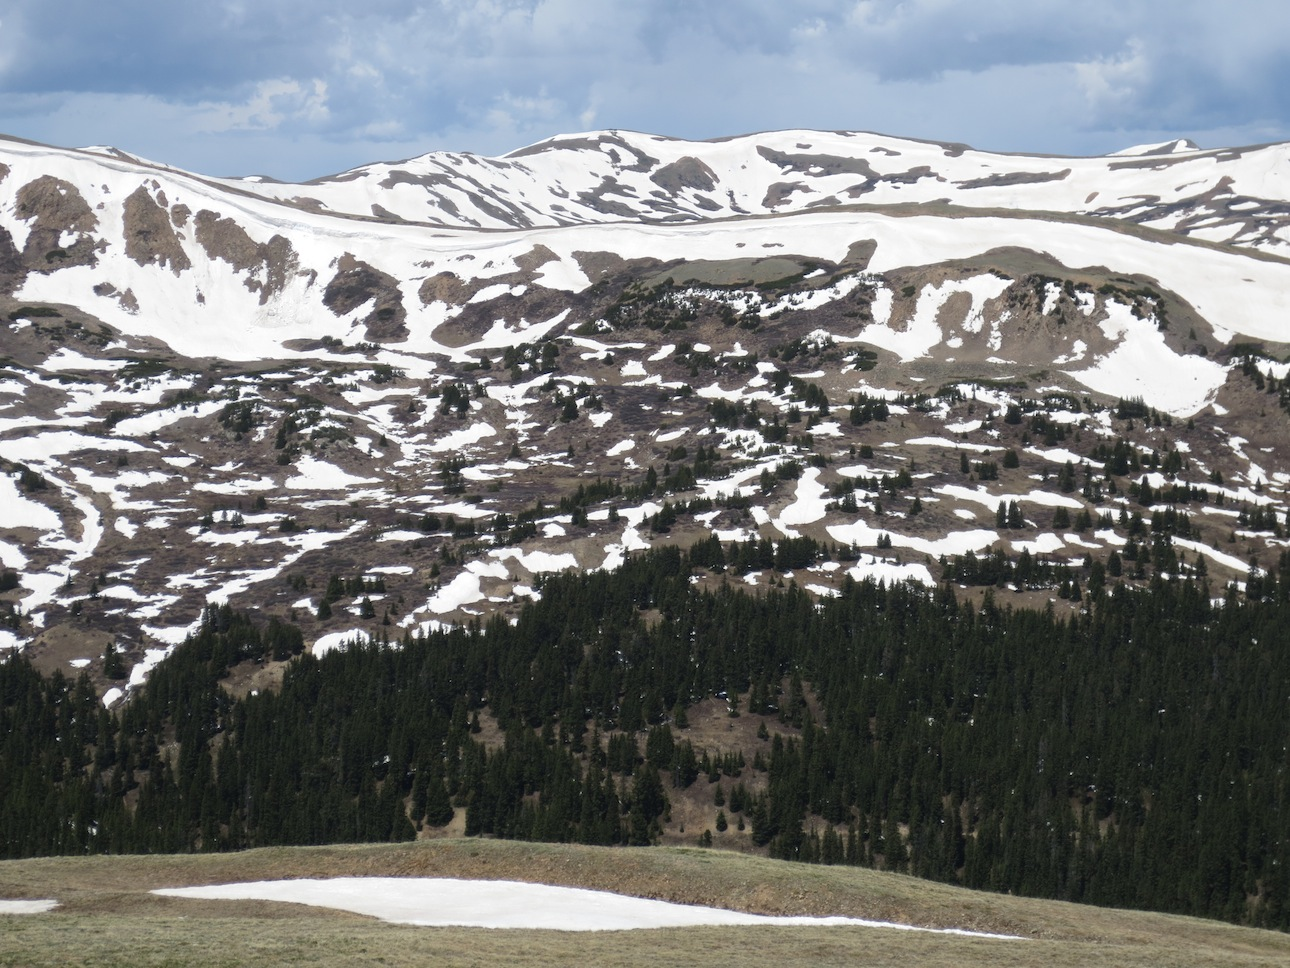 Snow capped mountains of Loveland Pass.